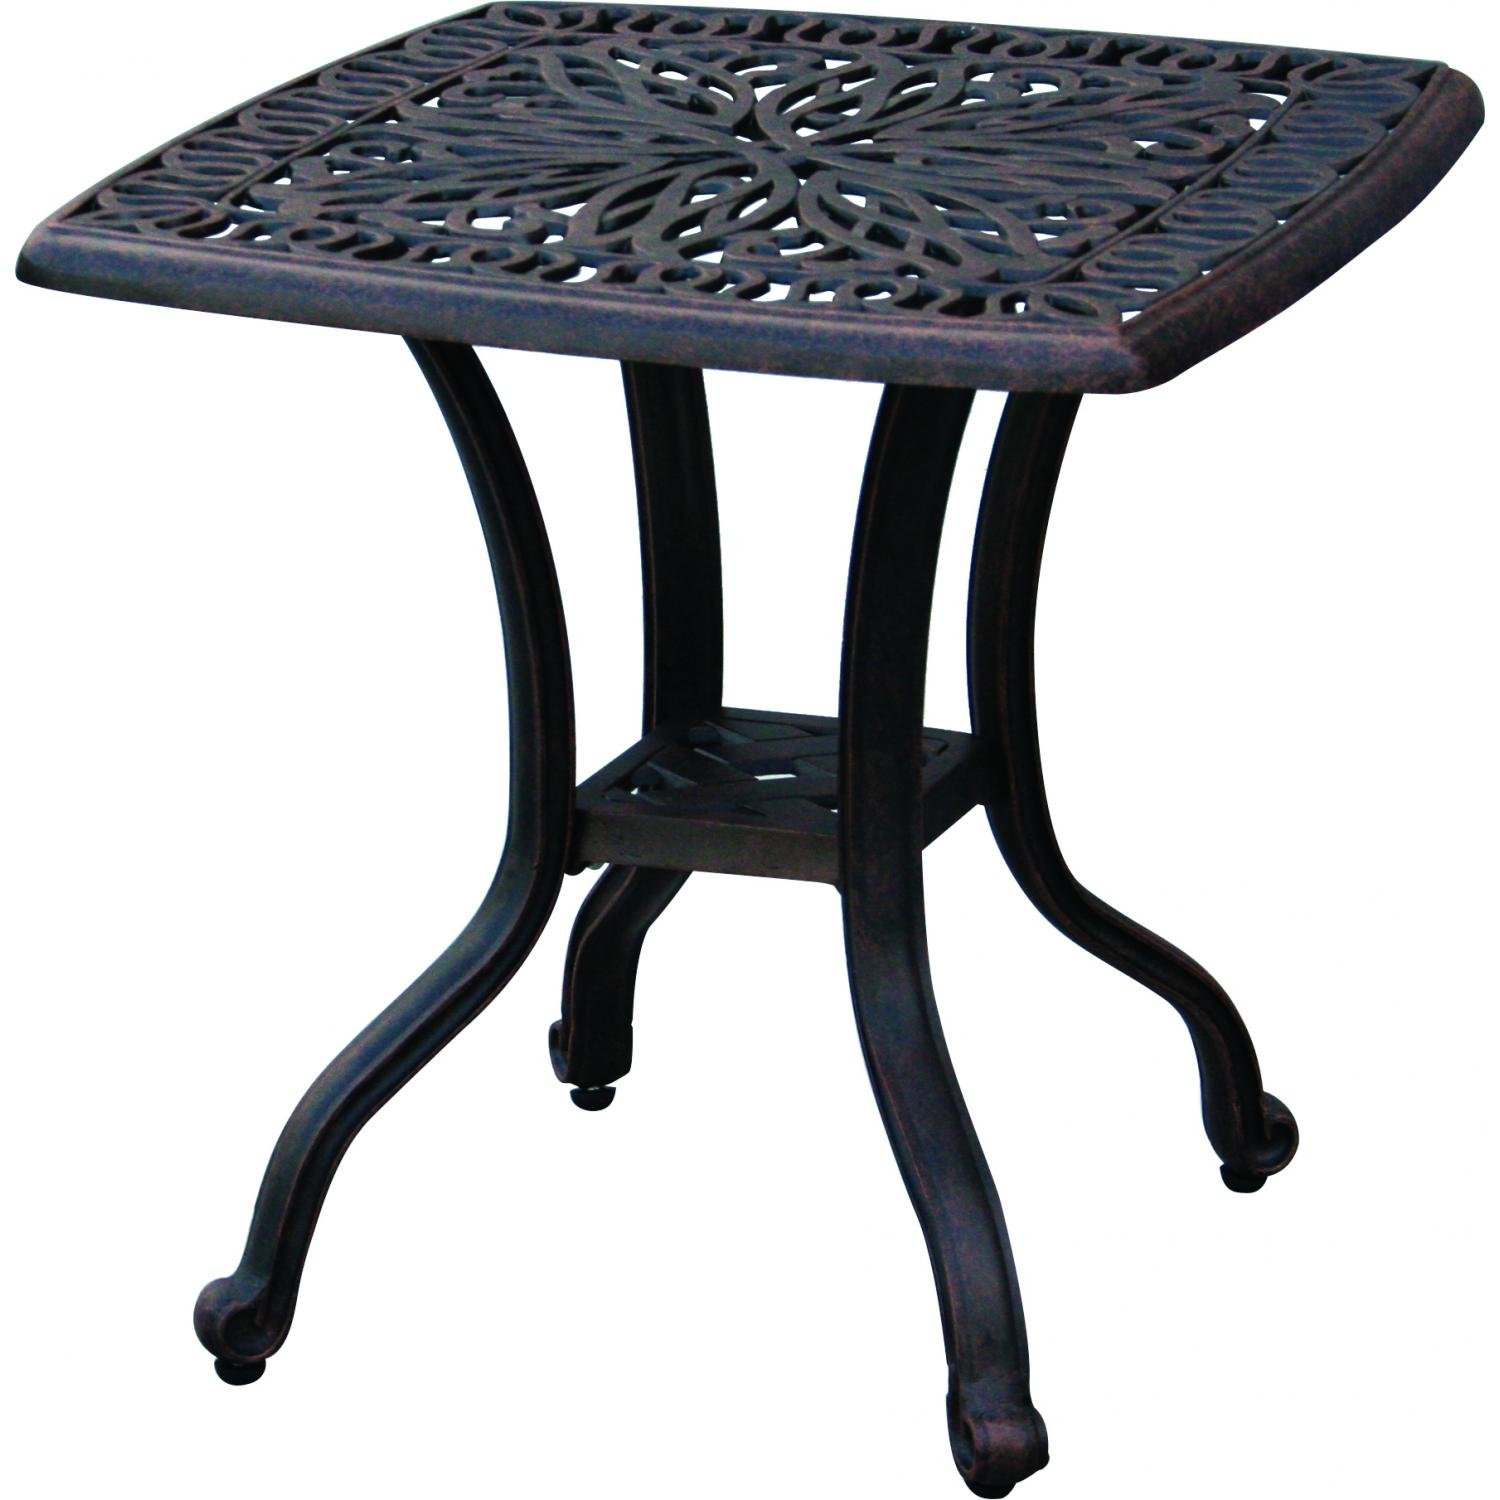 darlee elisabeth cast aluminum outdoor patio end table wrought iron accent inch square antique bronze side tables garden furniture concrete bistro corner small metal aspen home